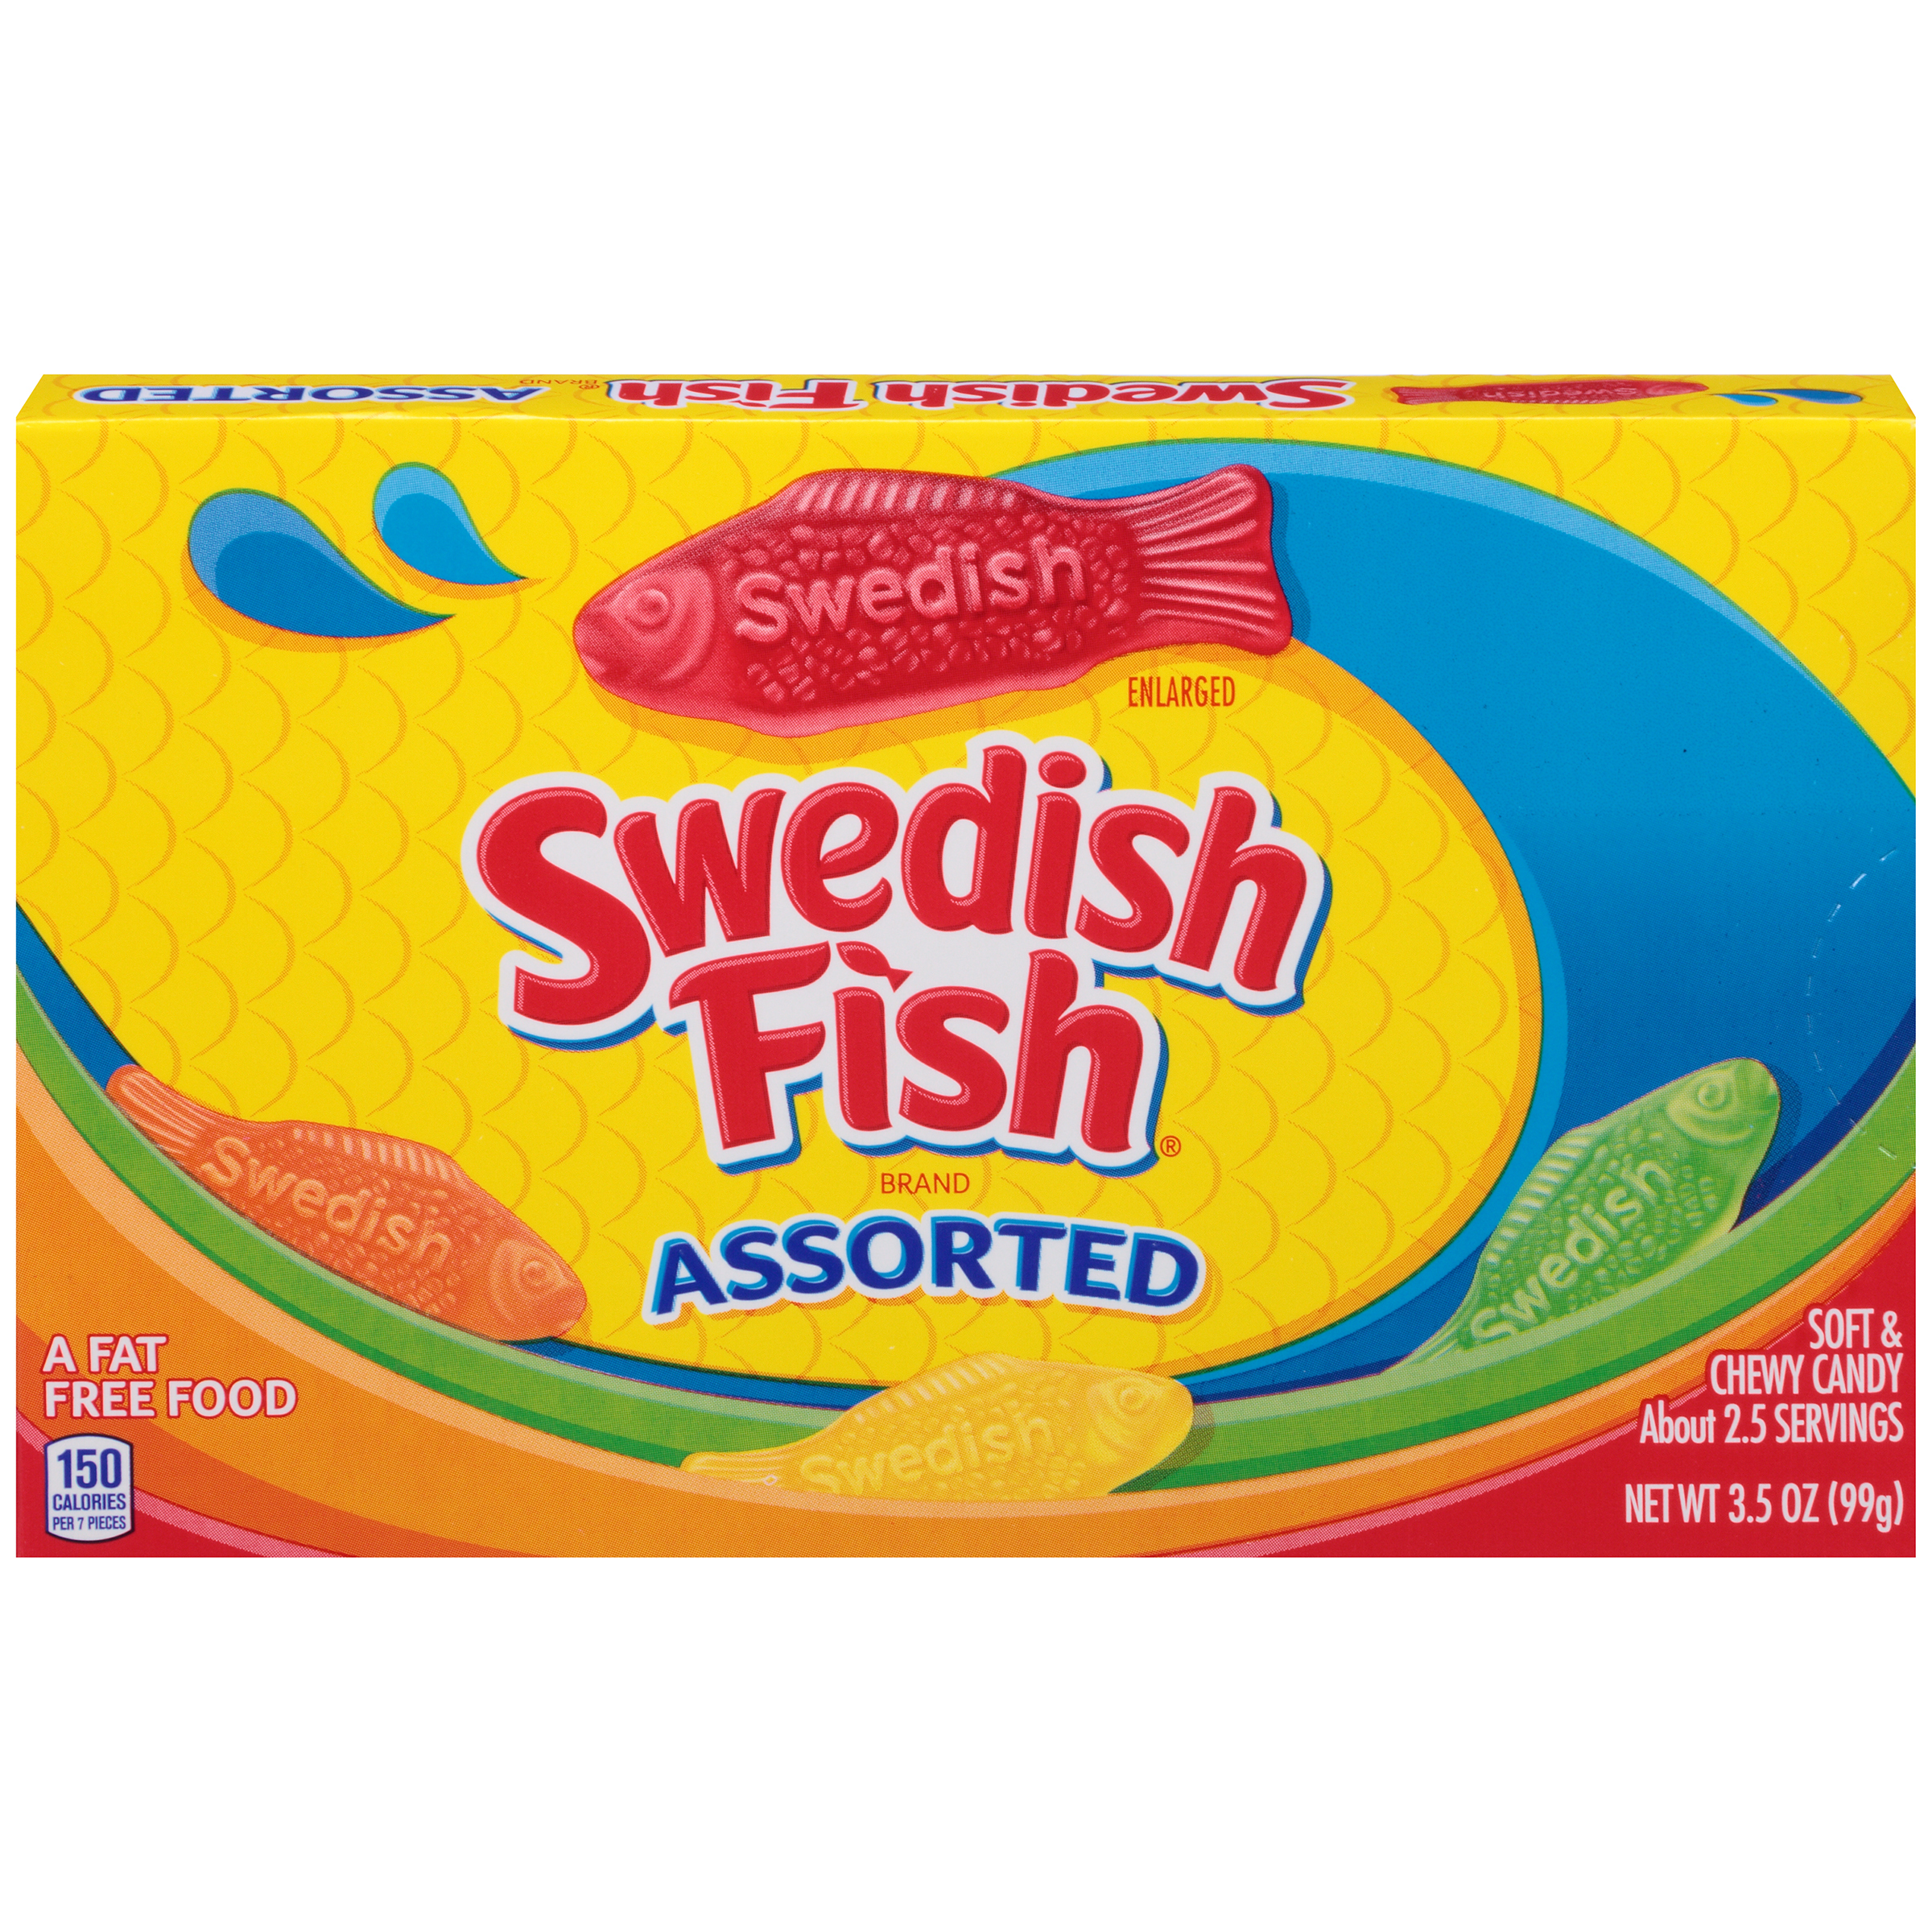 SWEDISH FISH Soft & Chewy Assorted Soft Candy 3.5 oz